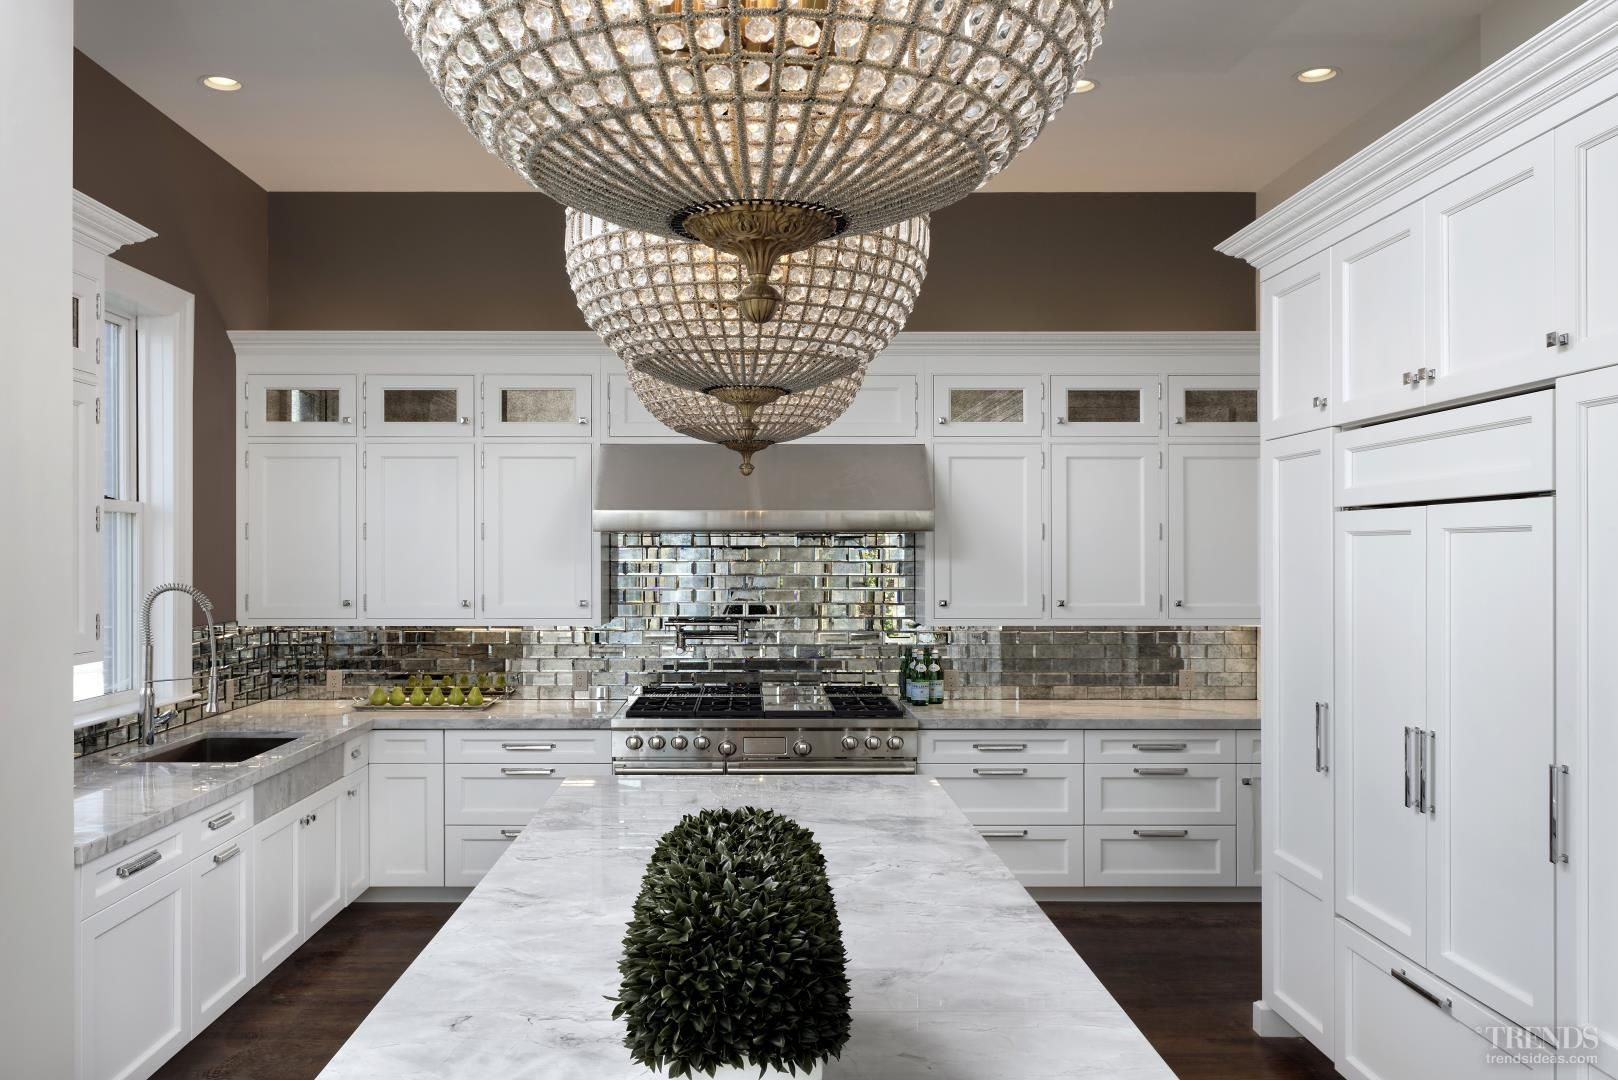 Traditional Luxury Kitchens This Luxury Kitchen Combines Traditional Features Such As Antique